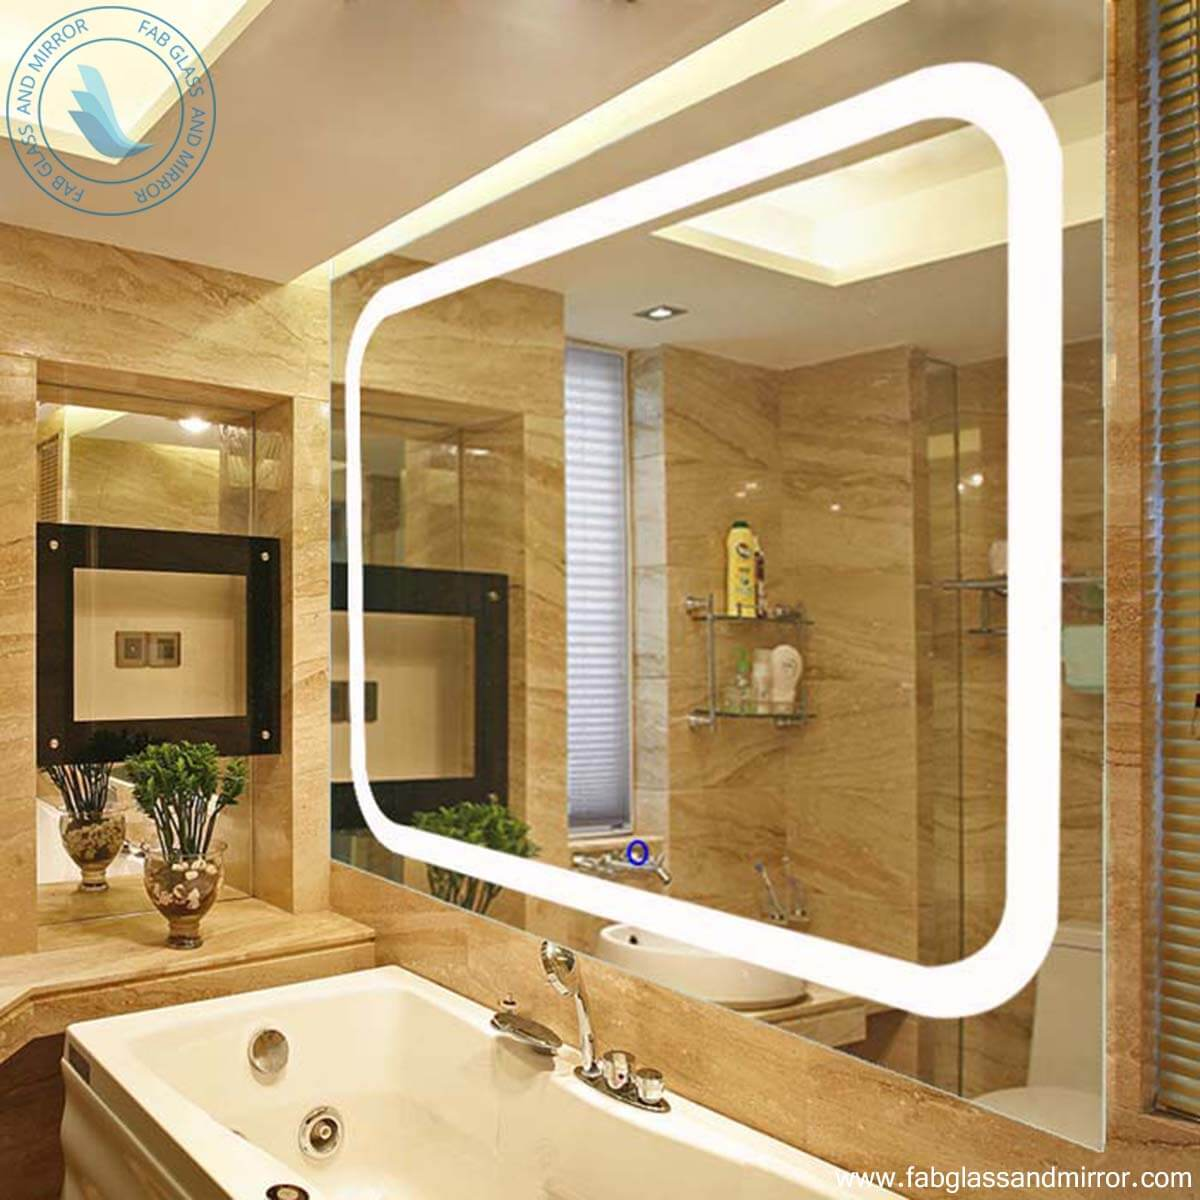 Modern Led Wall Mirrors Bathroom Led Lighted Wall Mirror Wall Mounted